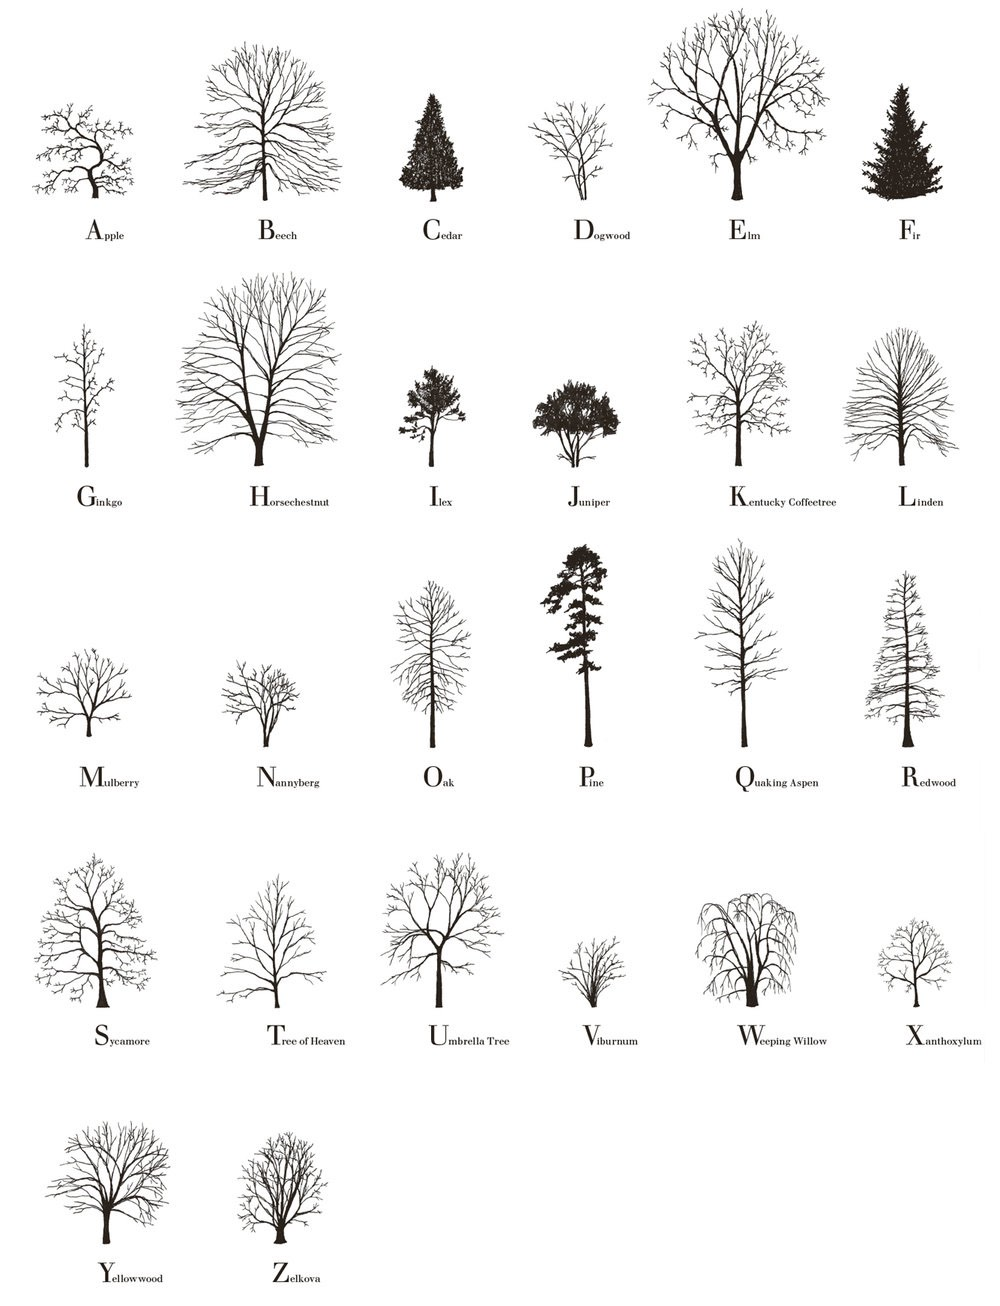 short essay on uses of trees Open document below is an essay on importance of trees in our life from anti essays, your source for research papers, essays, and term paper examples.